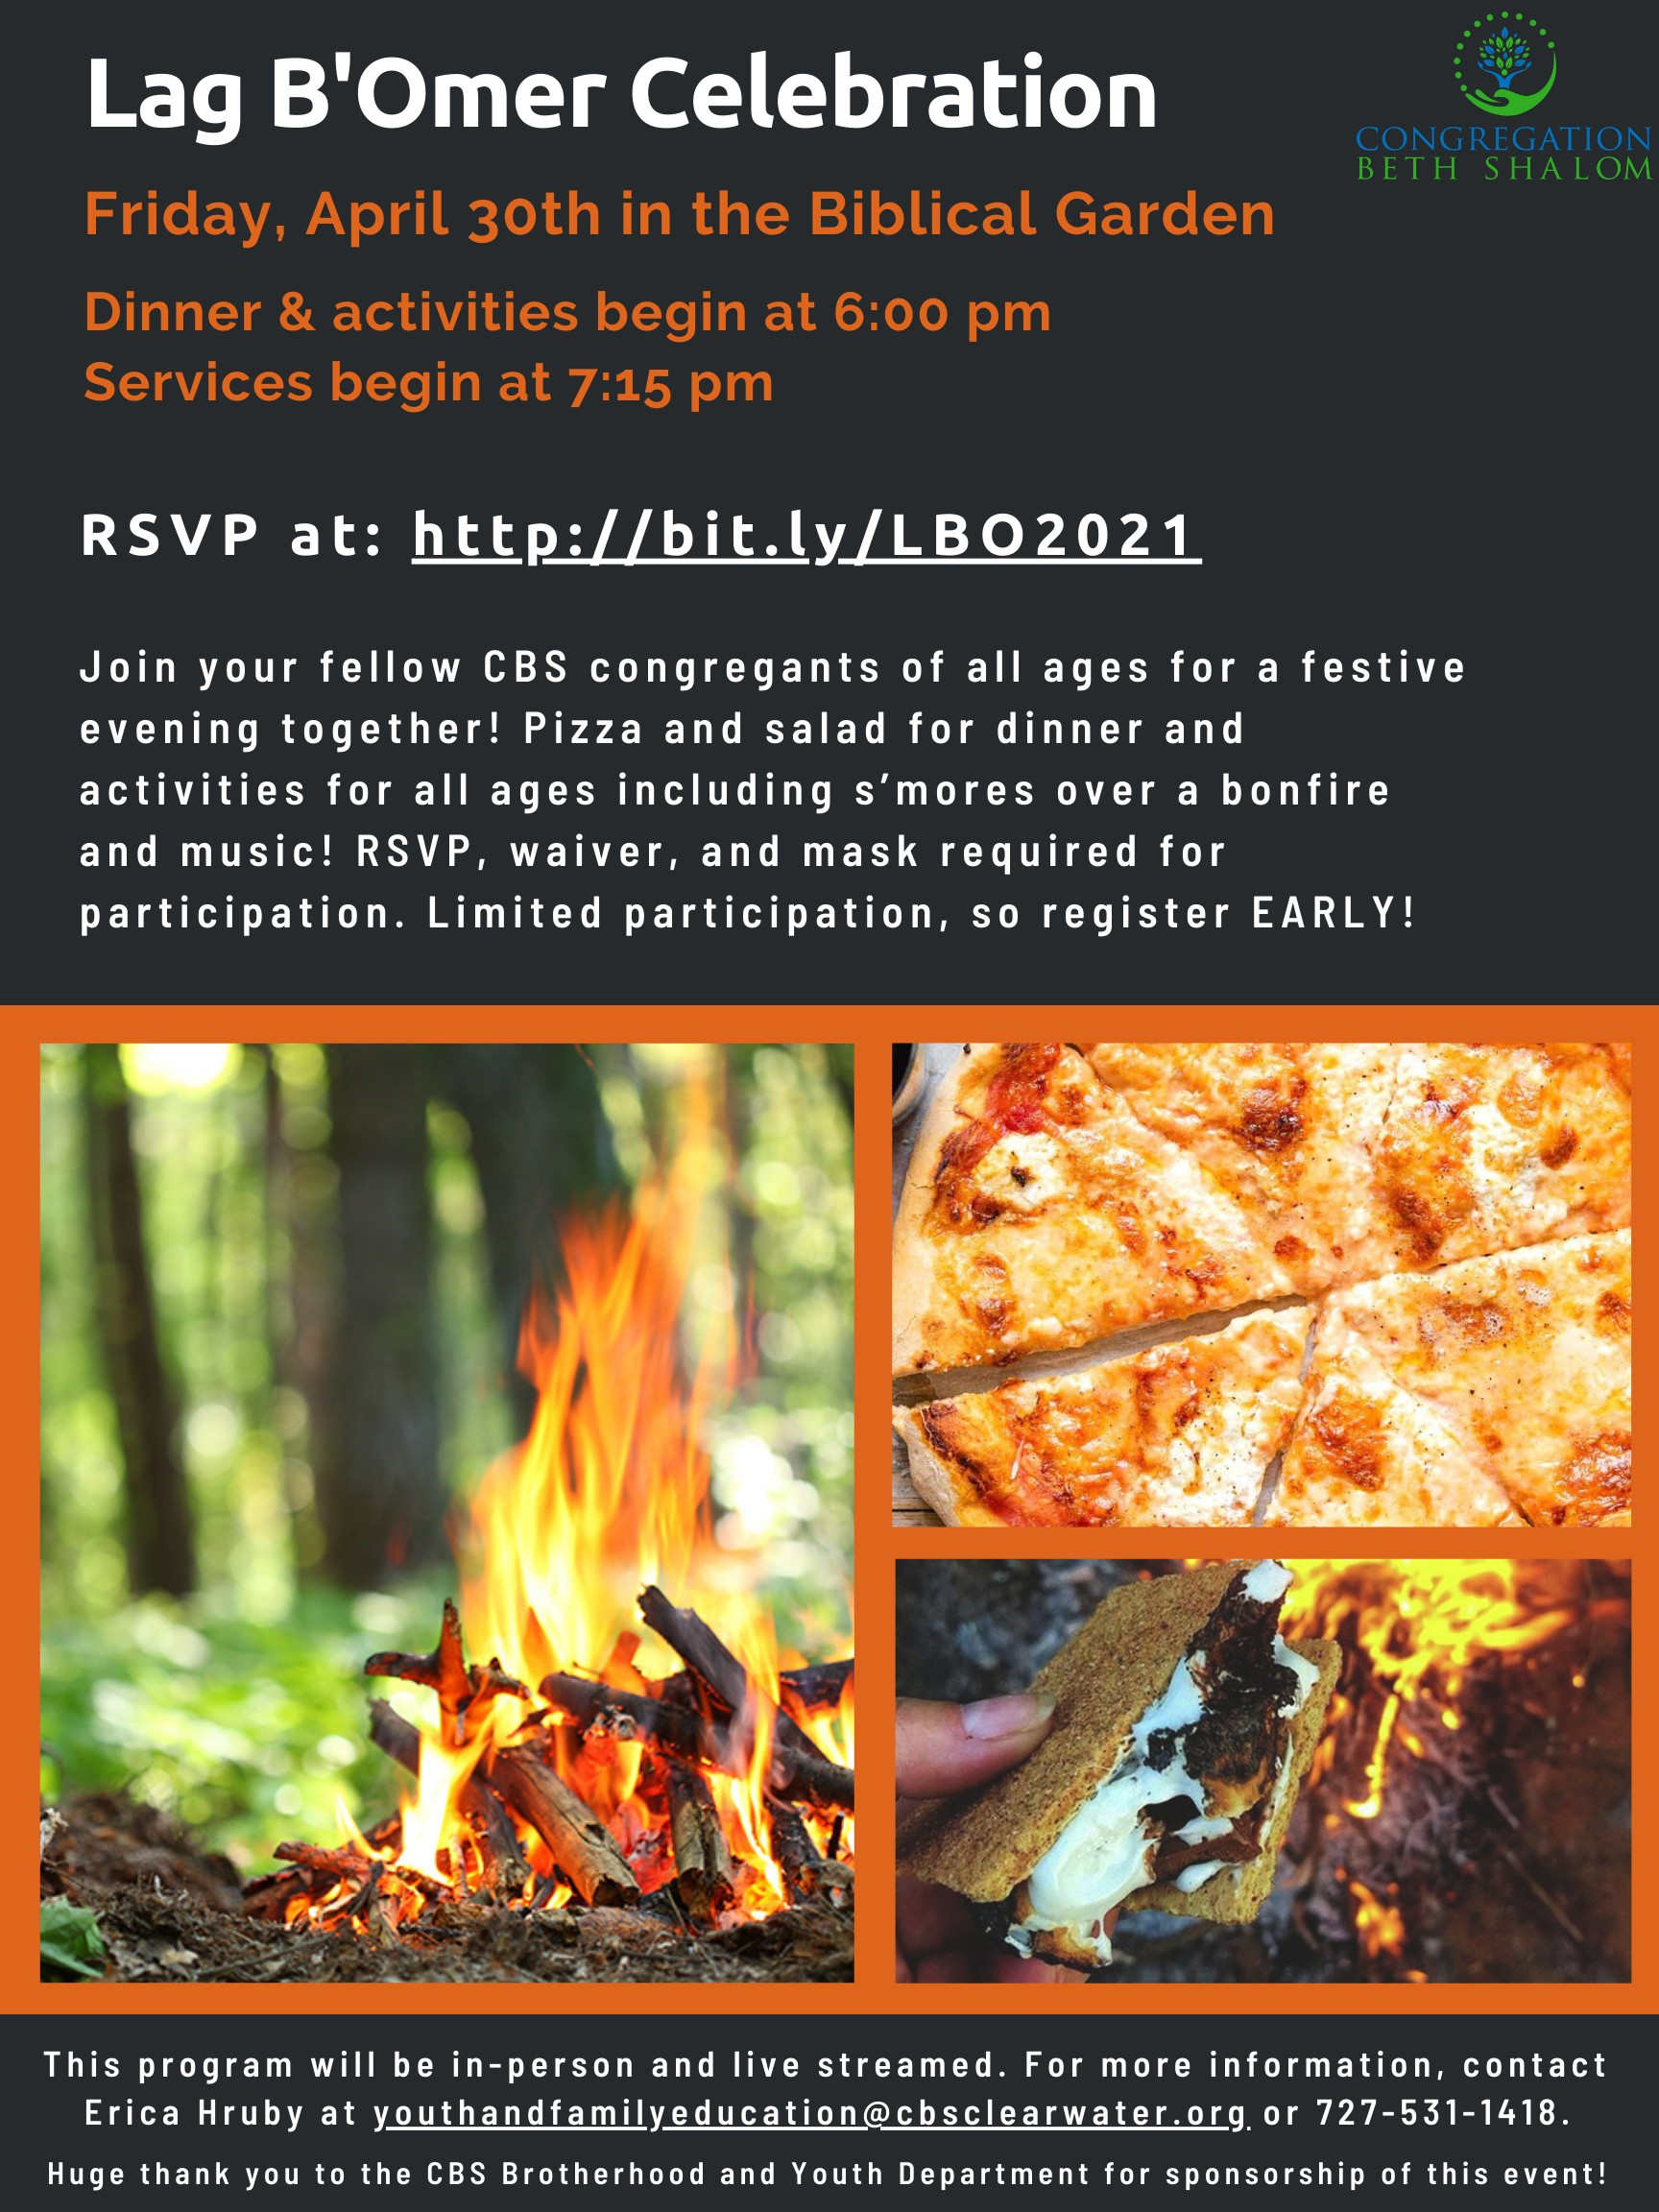 """</a>                                                                                                                                                                                       <span class=""""slider_description"""">Lag B'Omer Celebration! Space is LIMITED!!</span>                                                                                     <a href=""""https://www.cbsclearwater.org/event/lag-bomer-dinner-and-service-.html"""" class=""""slider_link""""                             target=""""_blank"""">                             Register NOW!                            </a>"""